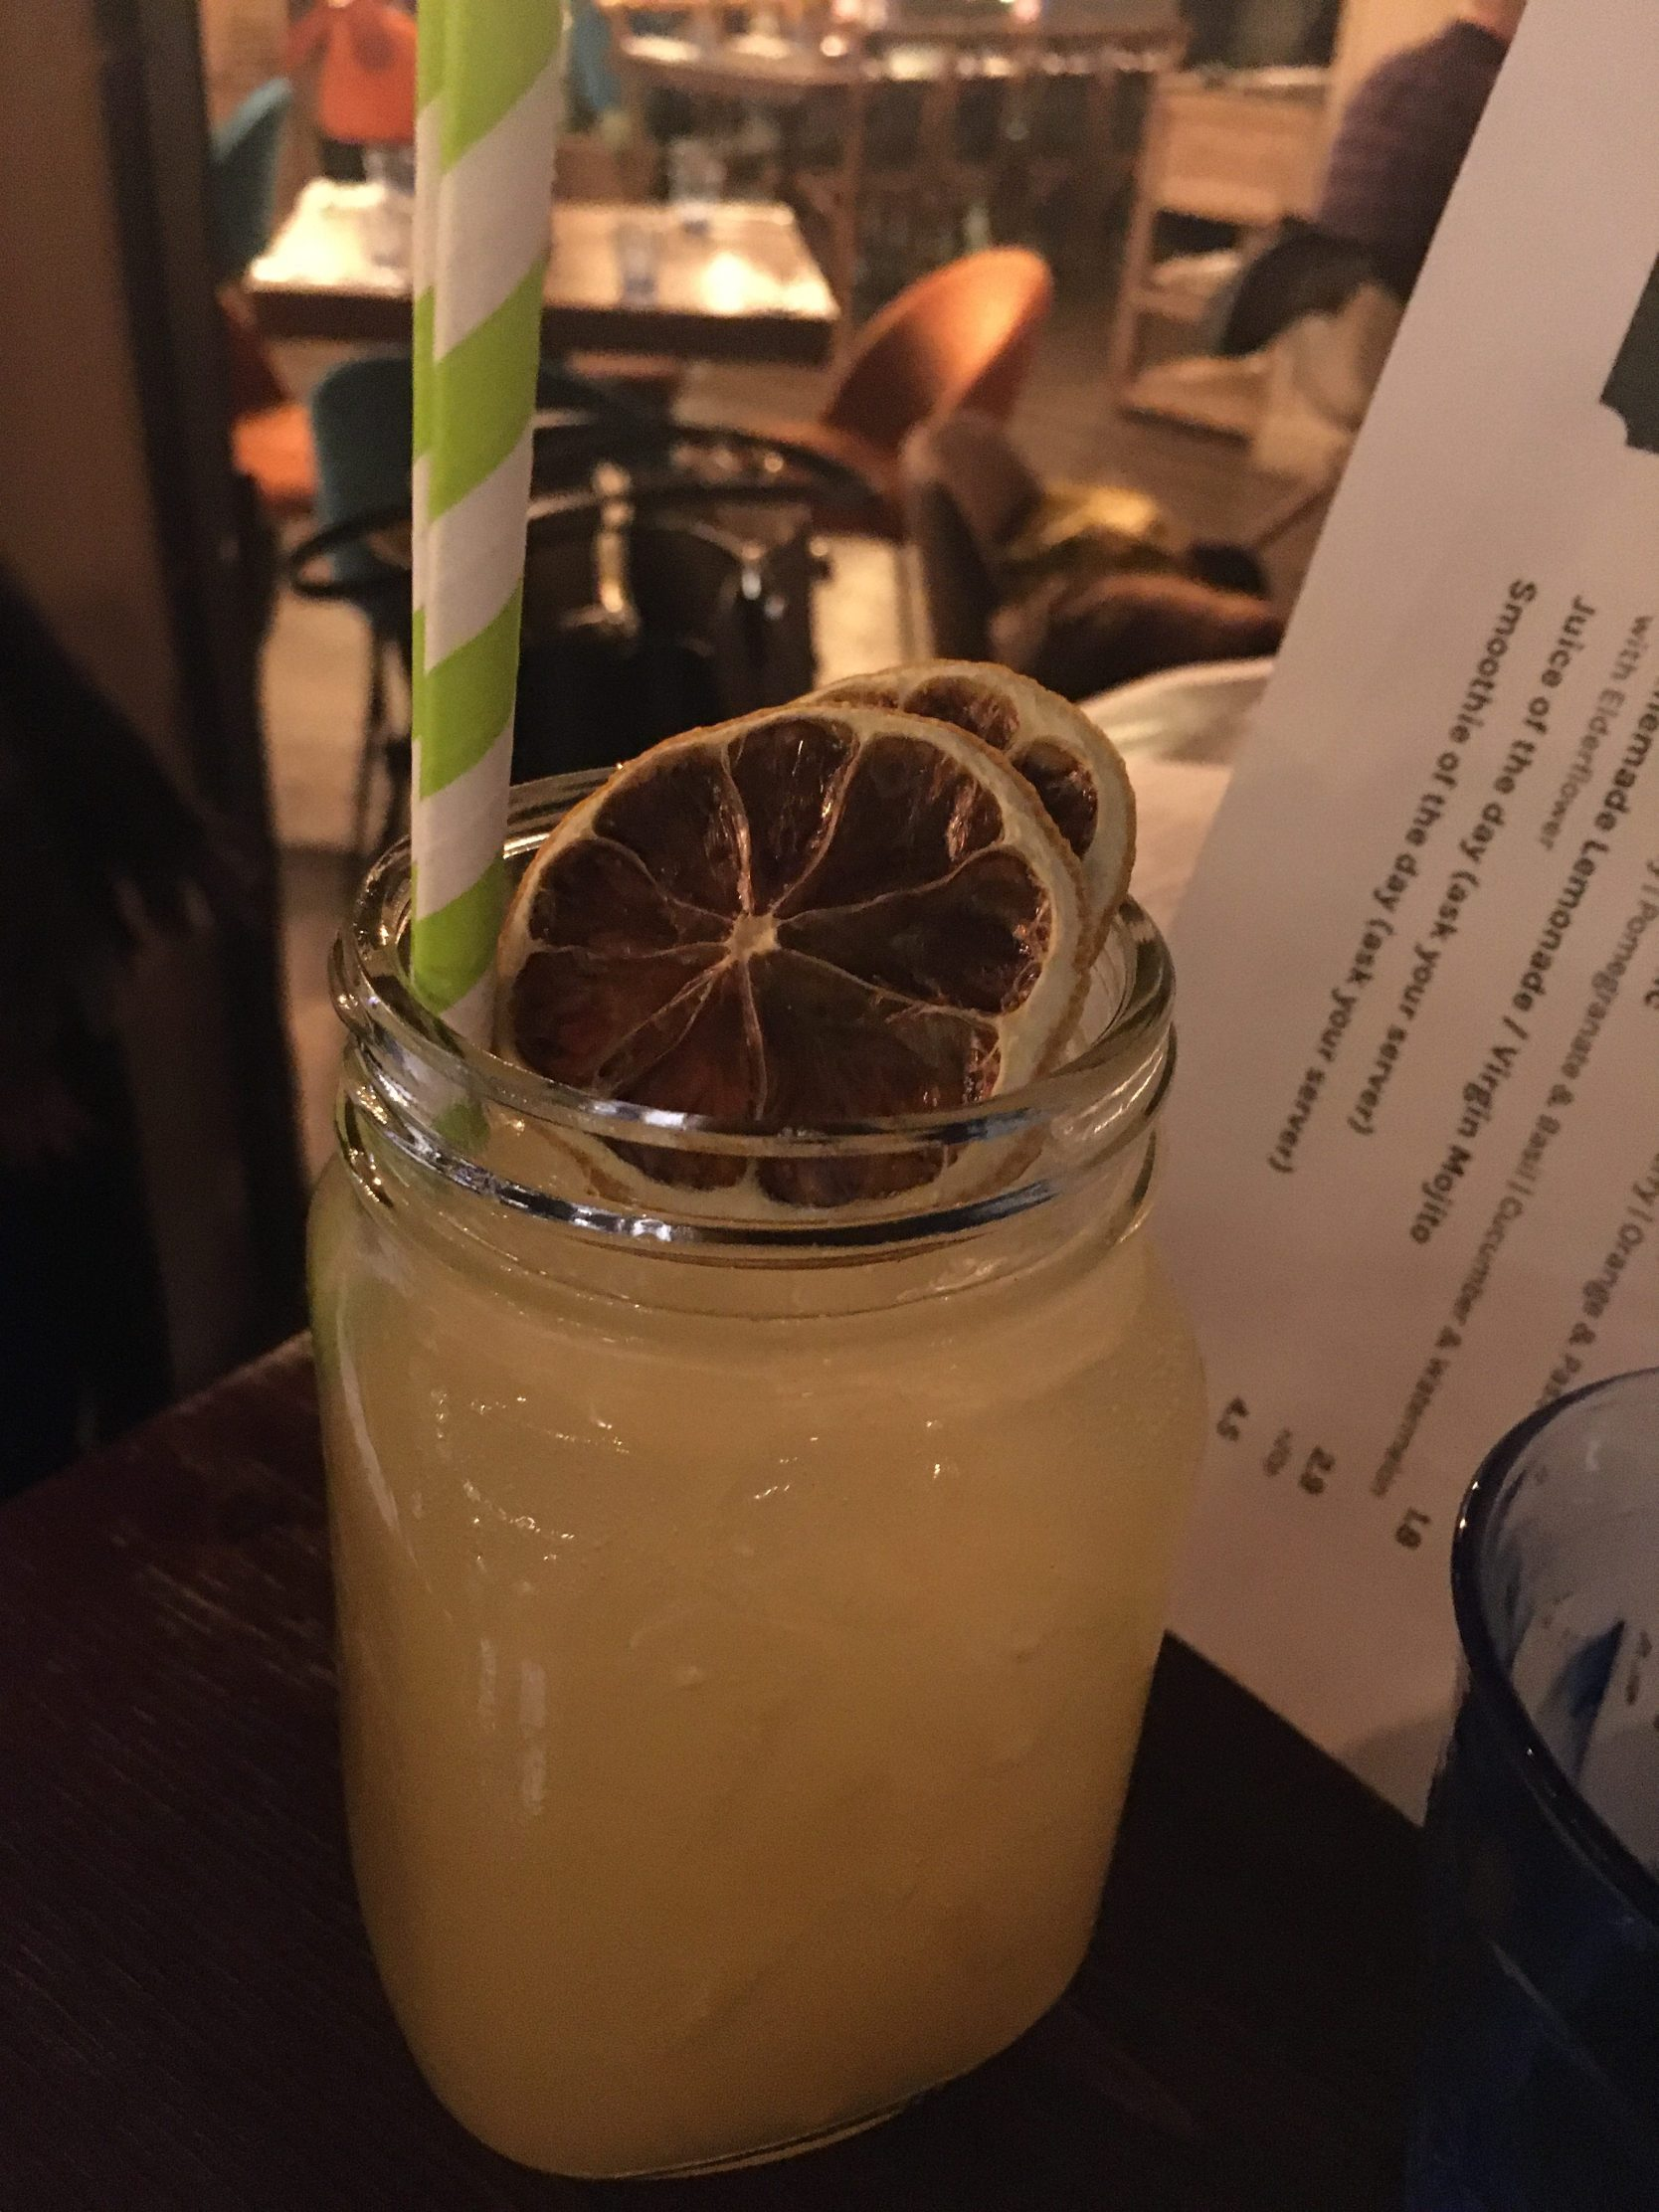 Review of the cocktails at Urban Garden